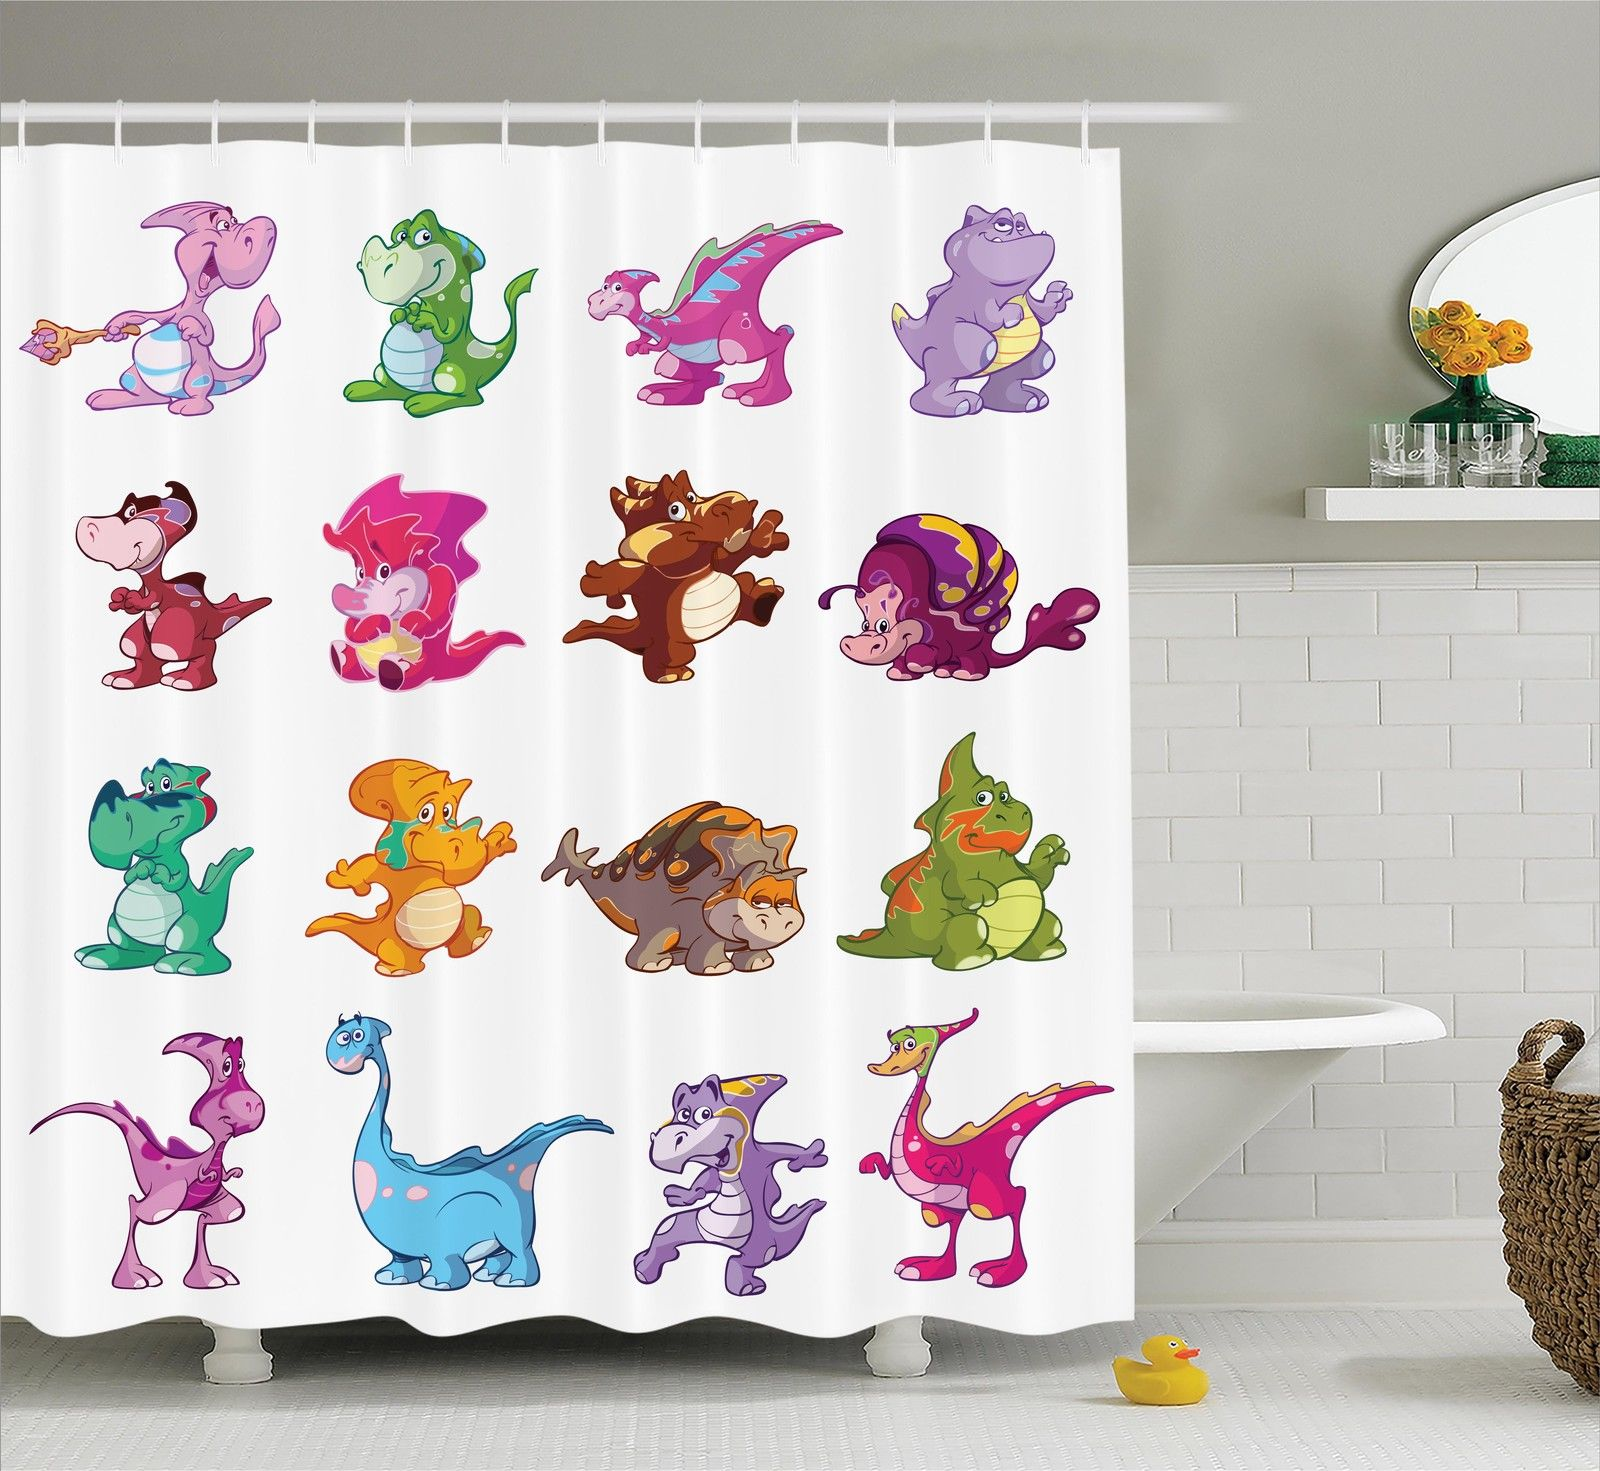 Jurassic Decor Shower Curtain Set, Collection Of Cute Dino'S Dinosaurs Extinction Funny Comic Child Illustration, Bathroom Accessories, 69W X 70L Inches, By Ambesonne